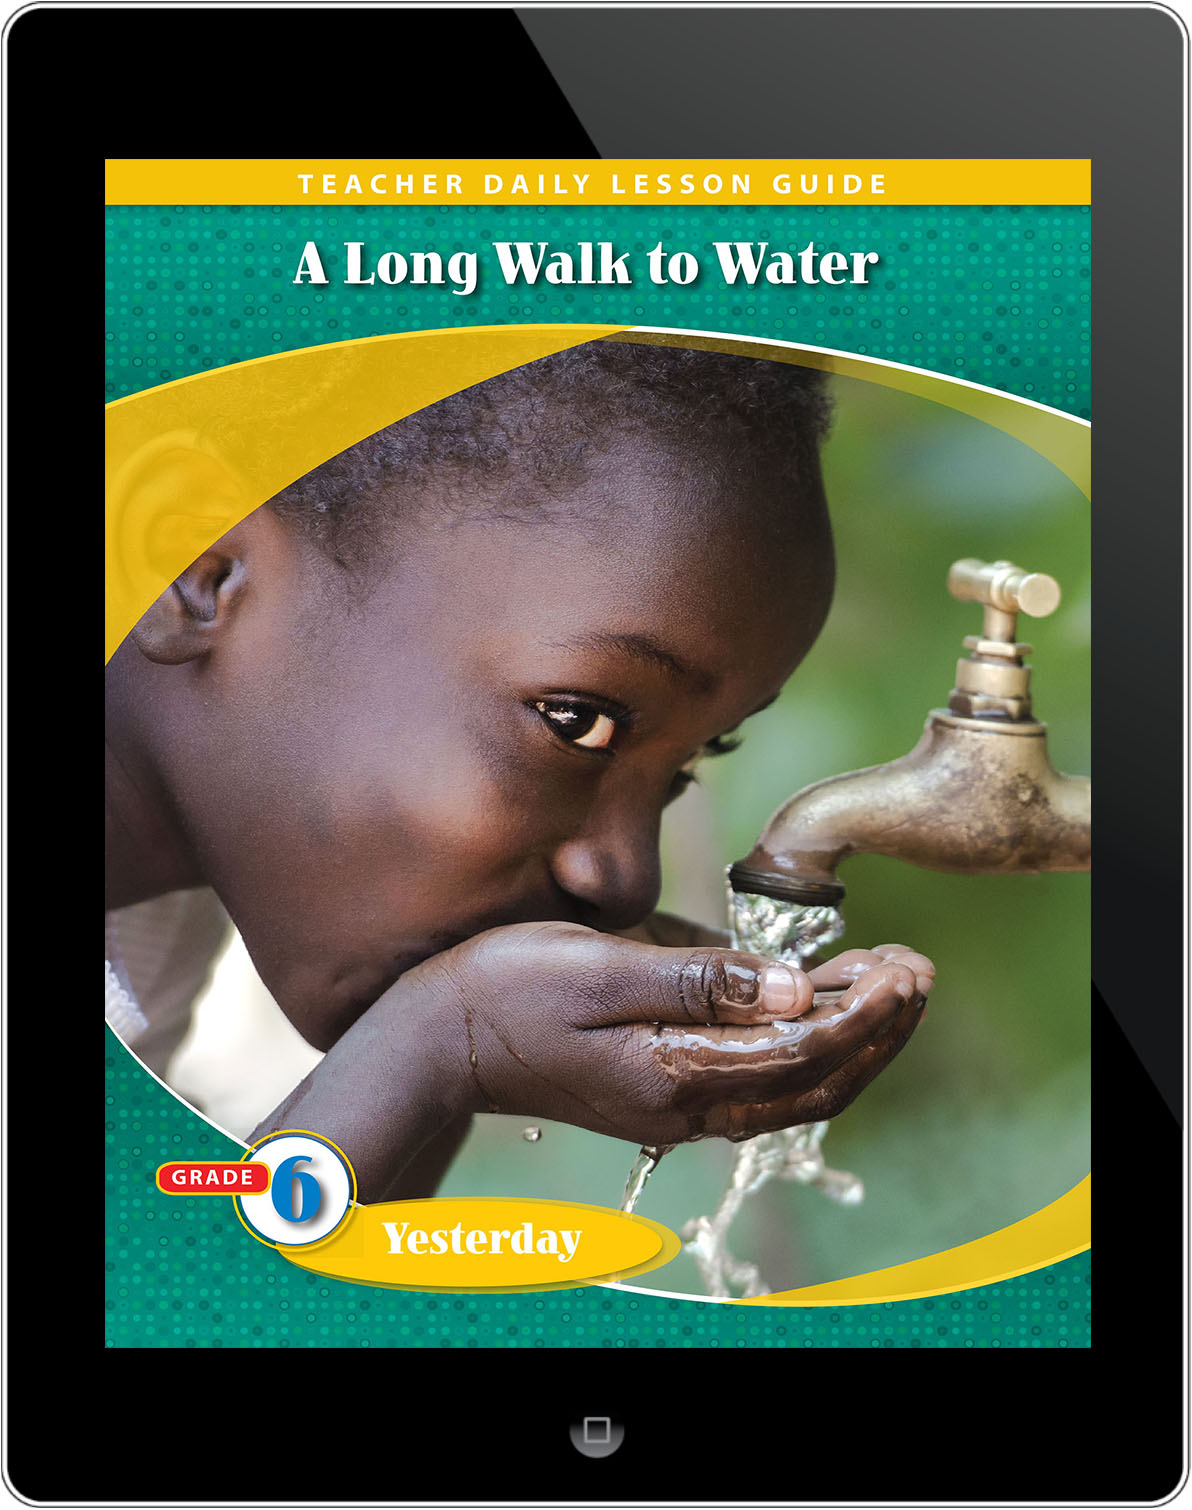 Pathways2.0 Grade 6 Yesterday Unit: A Long Walk to Water Daily Lesson Guide 5 Year License